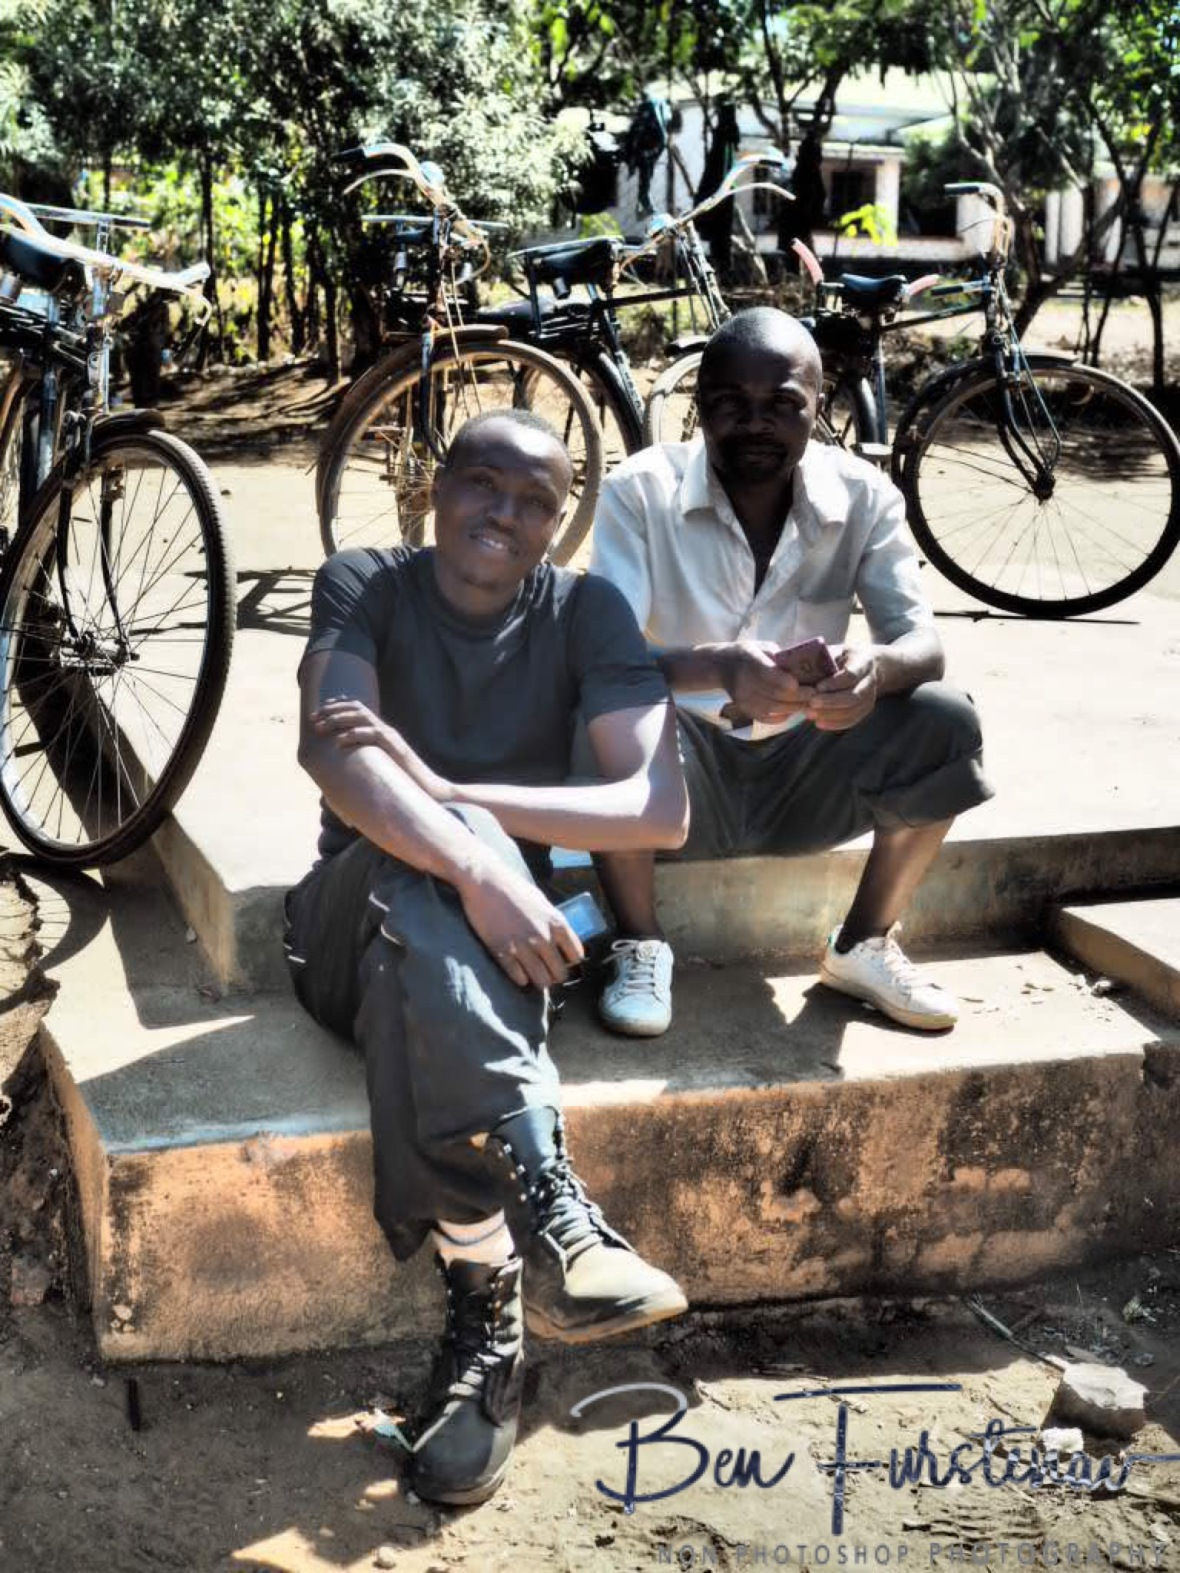 Bike taxi stands in Lilongwe, Malawi